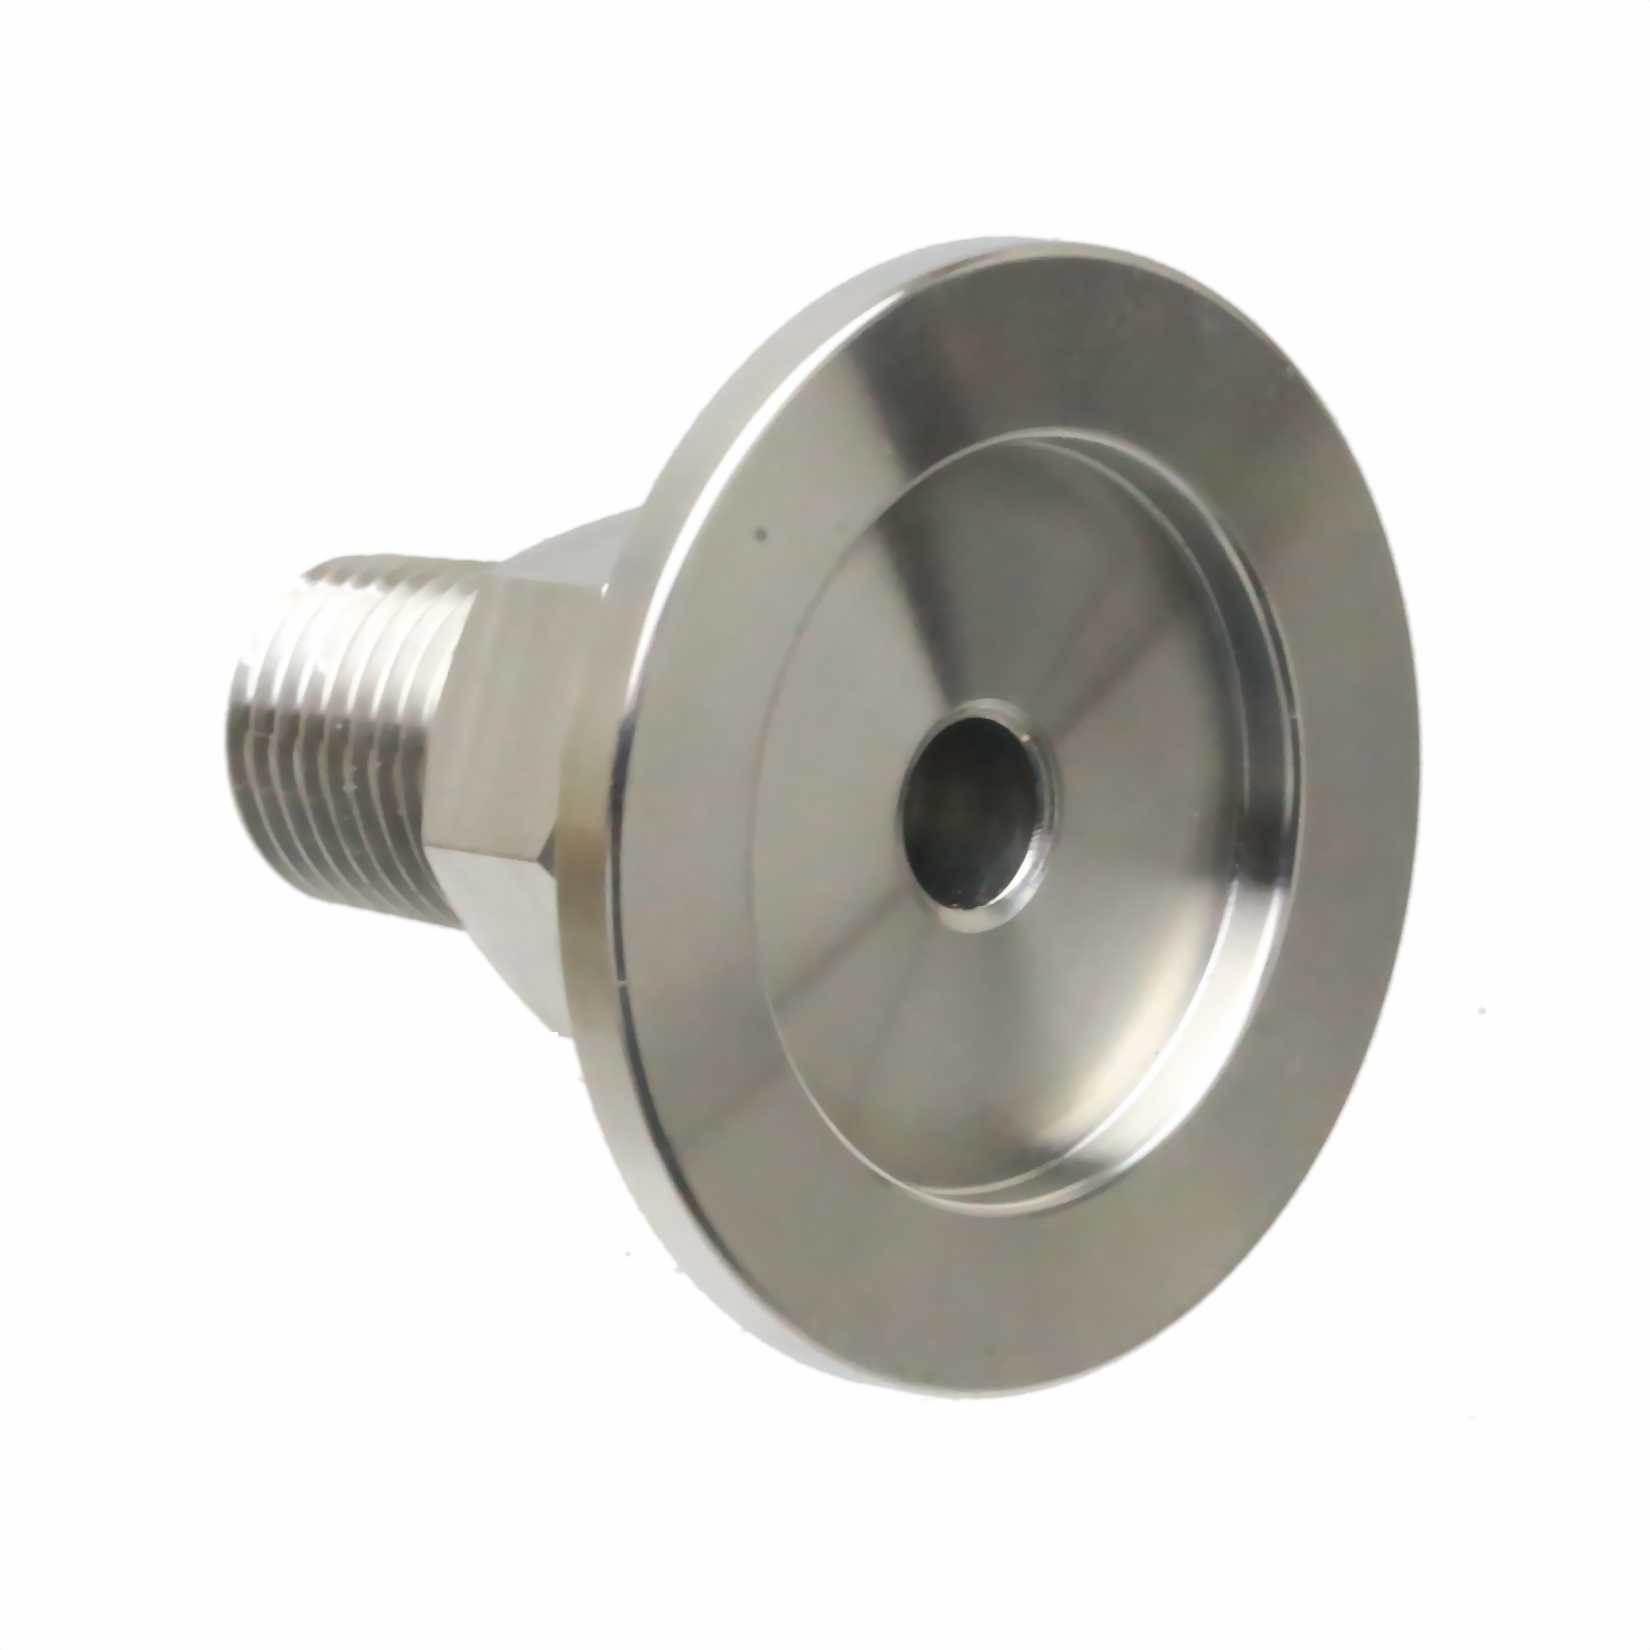 Stainless Steel Adapter KF-25 to 3//4 in Female 304 ISO-KF Flange Size NW-25 PT-Female